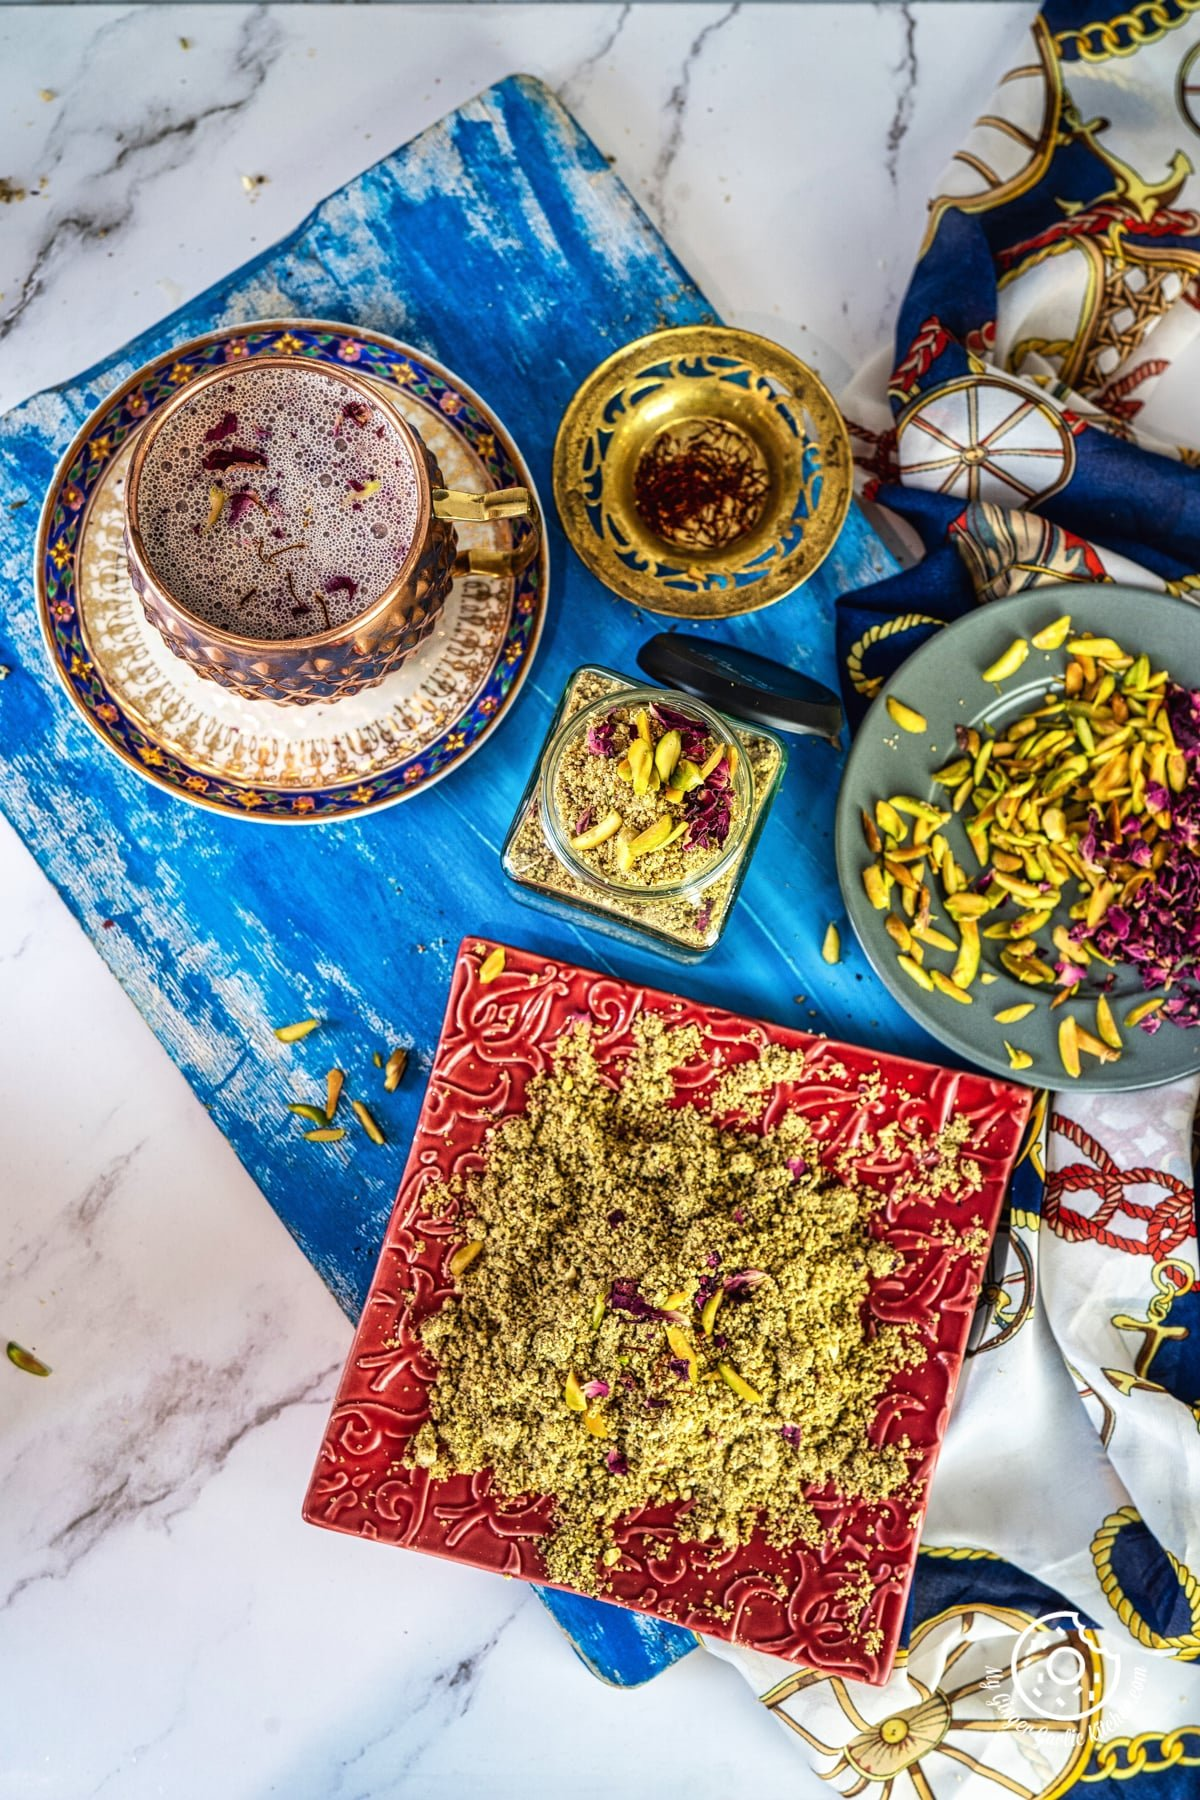 overhead shot of thandai powder in a red plate and in a transparent jar and thandai milkshake on the side